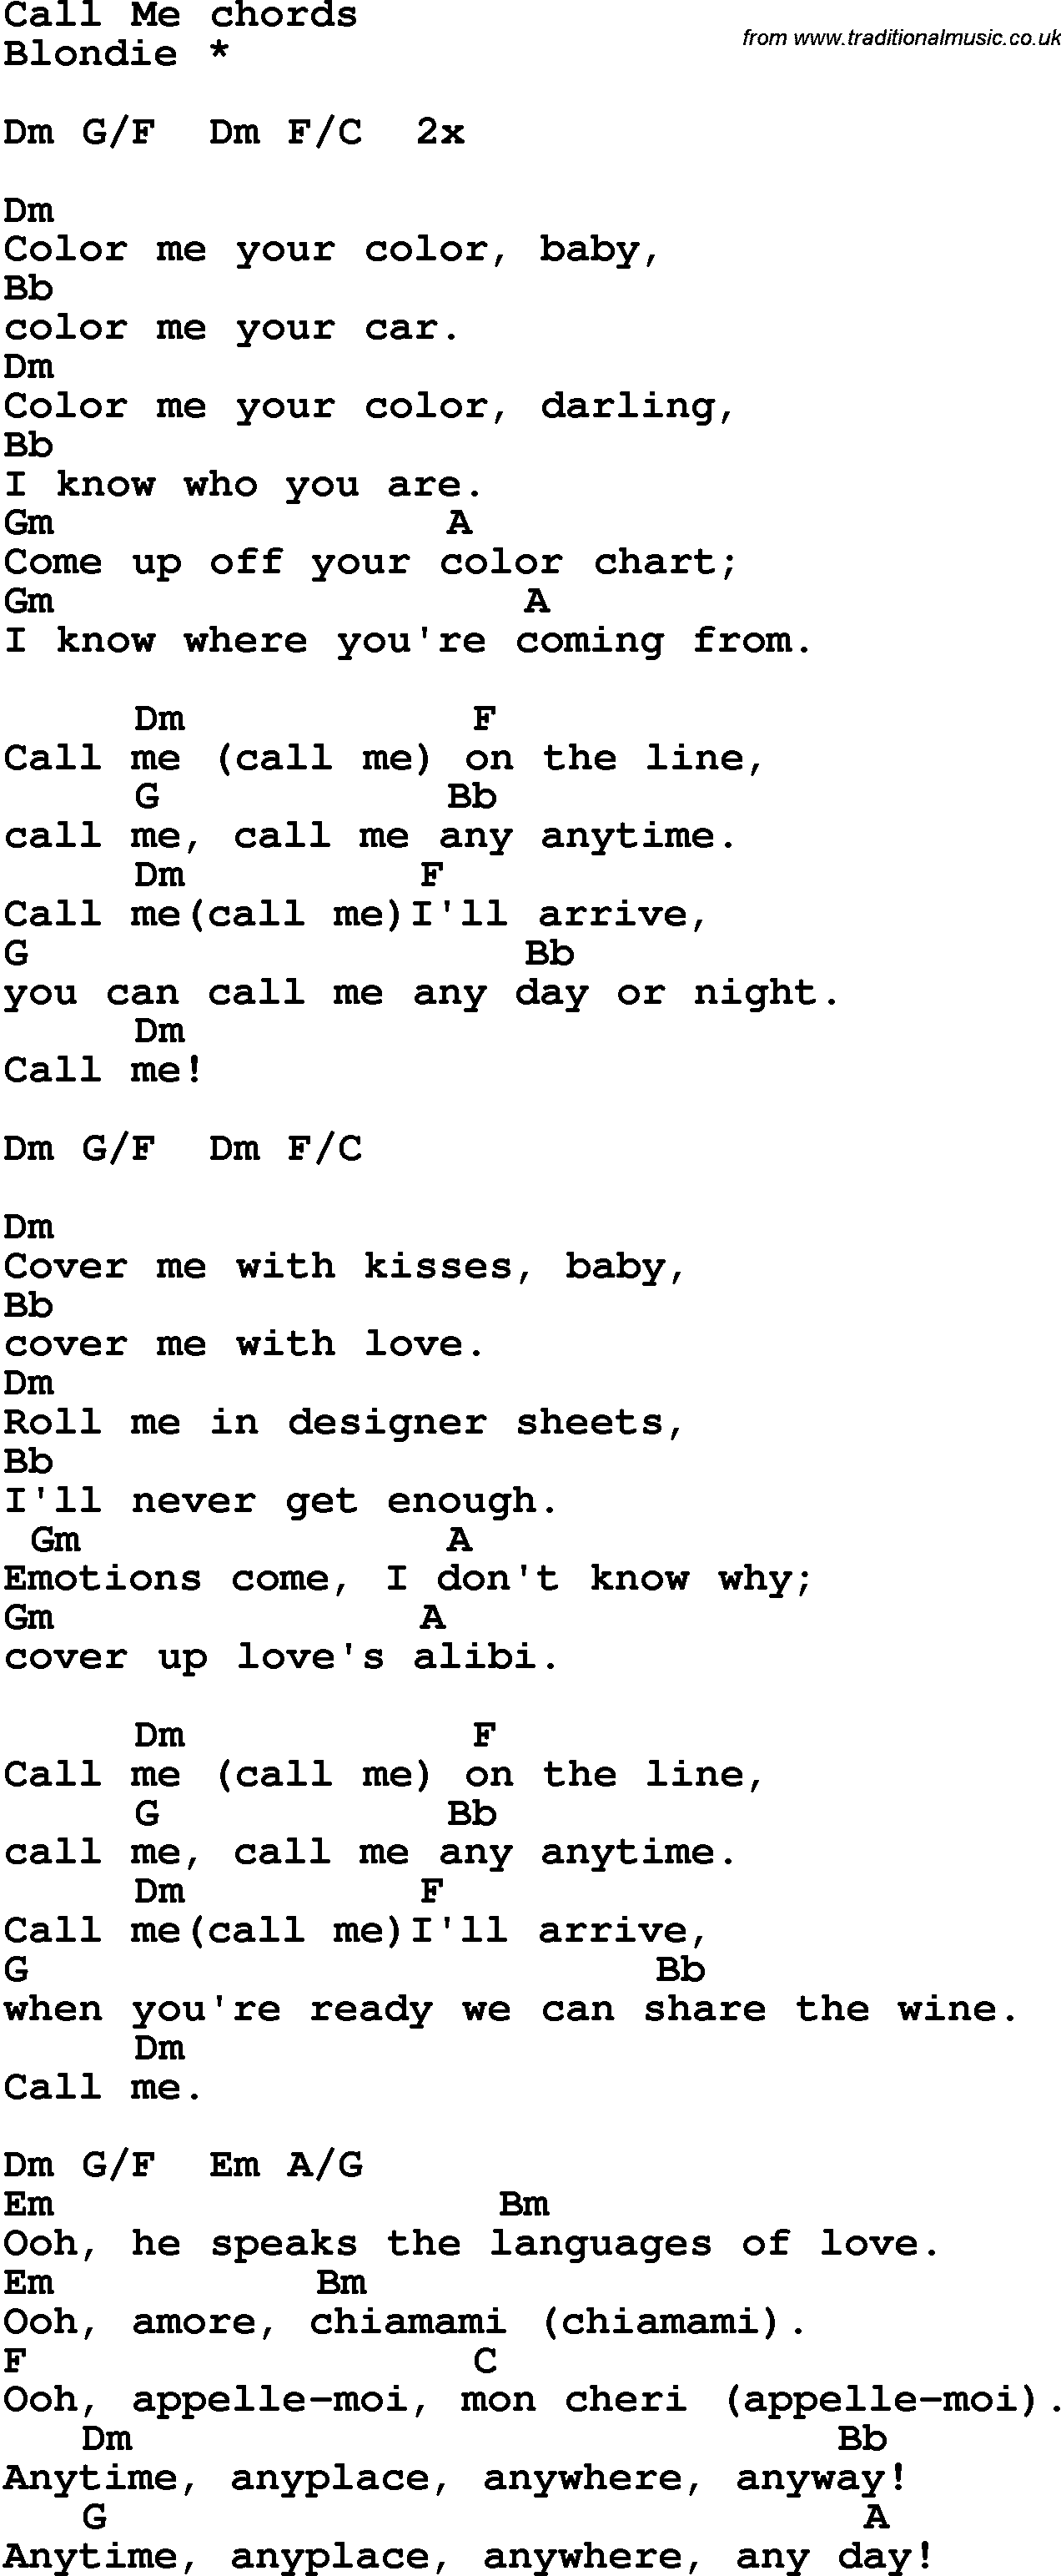 Call Me Maybe Guitar Chords submited images.